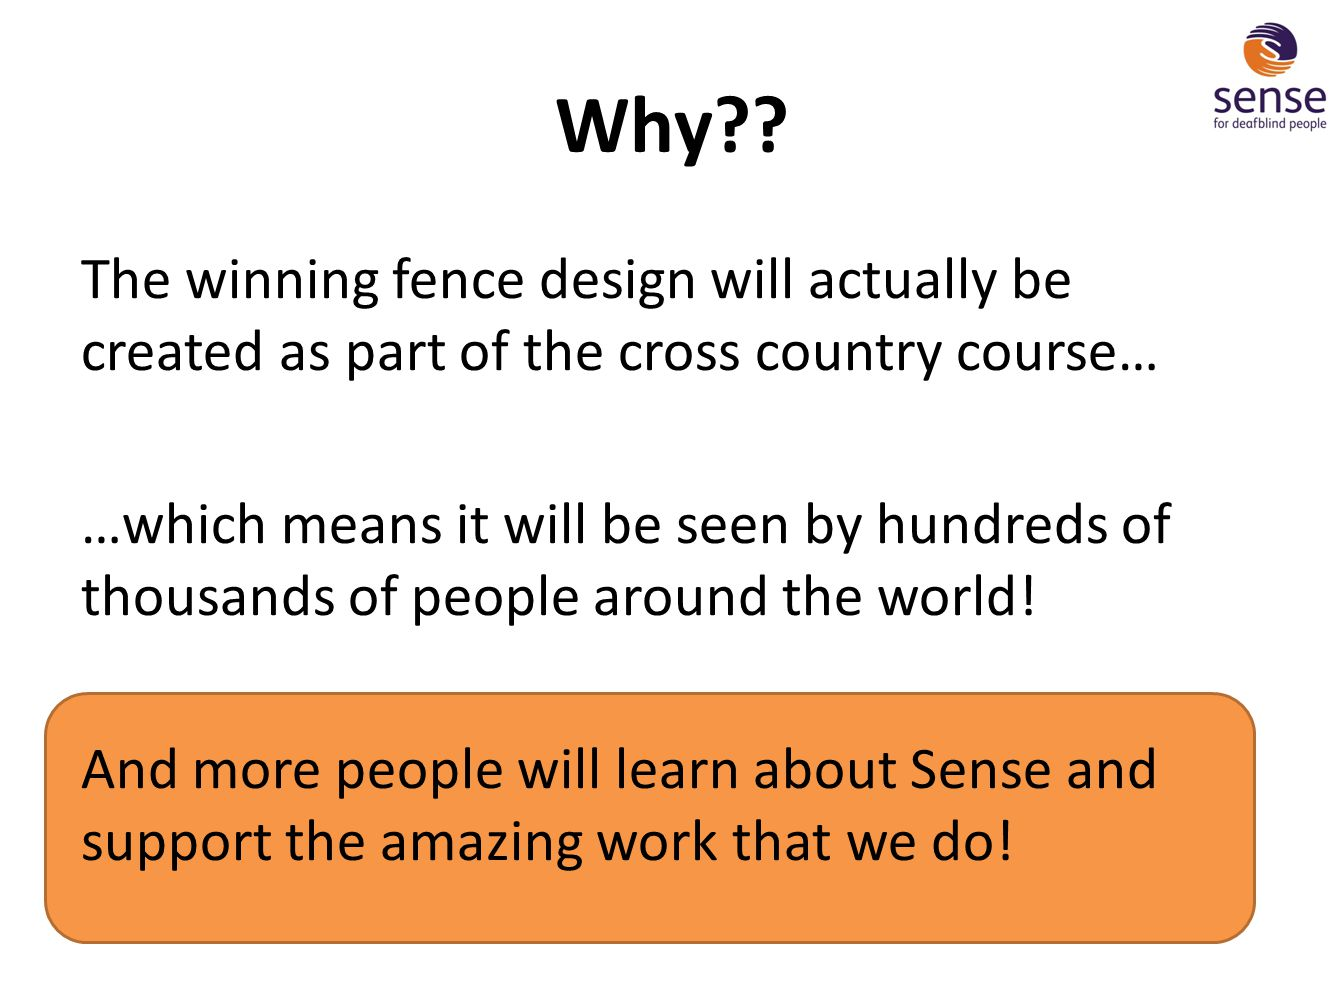 Why The winning fence design will actually be created as part of the cross country course…